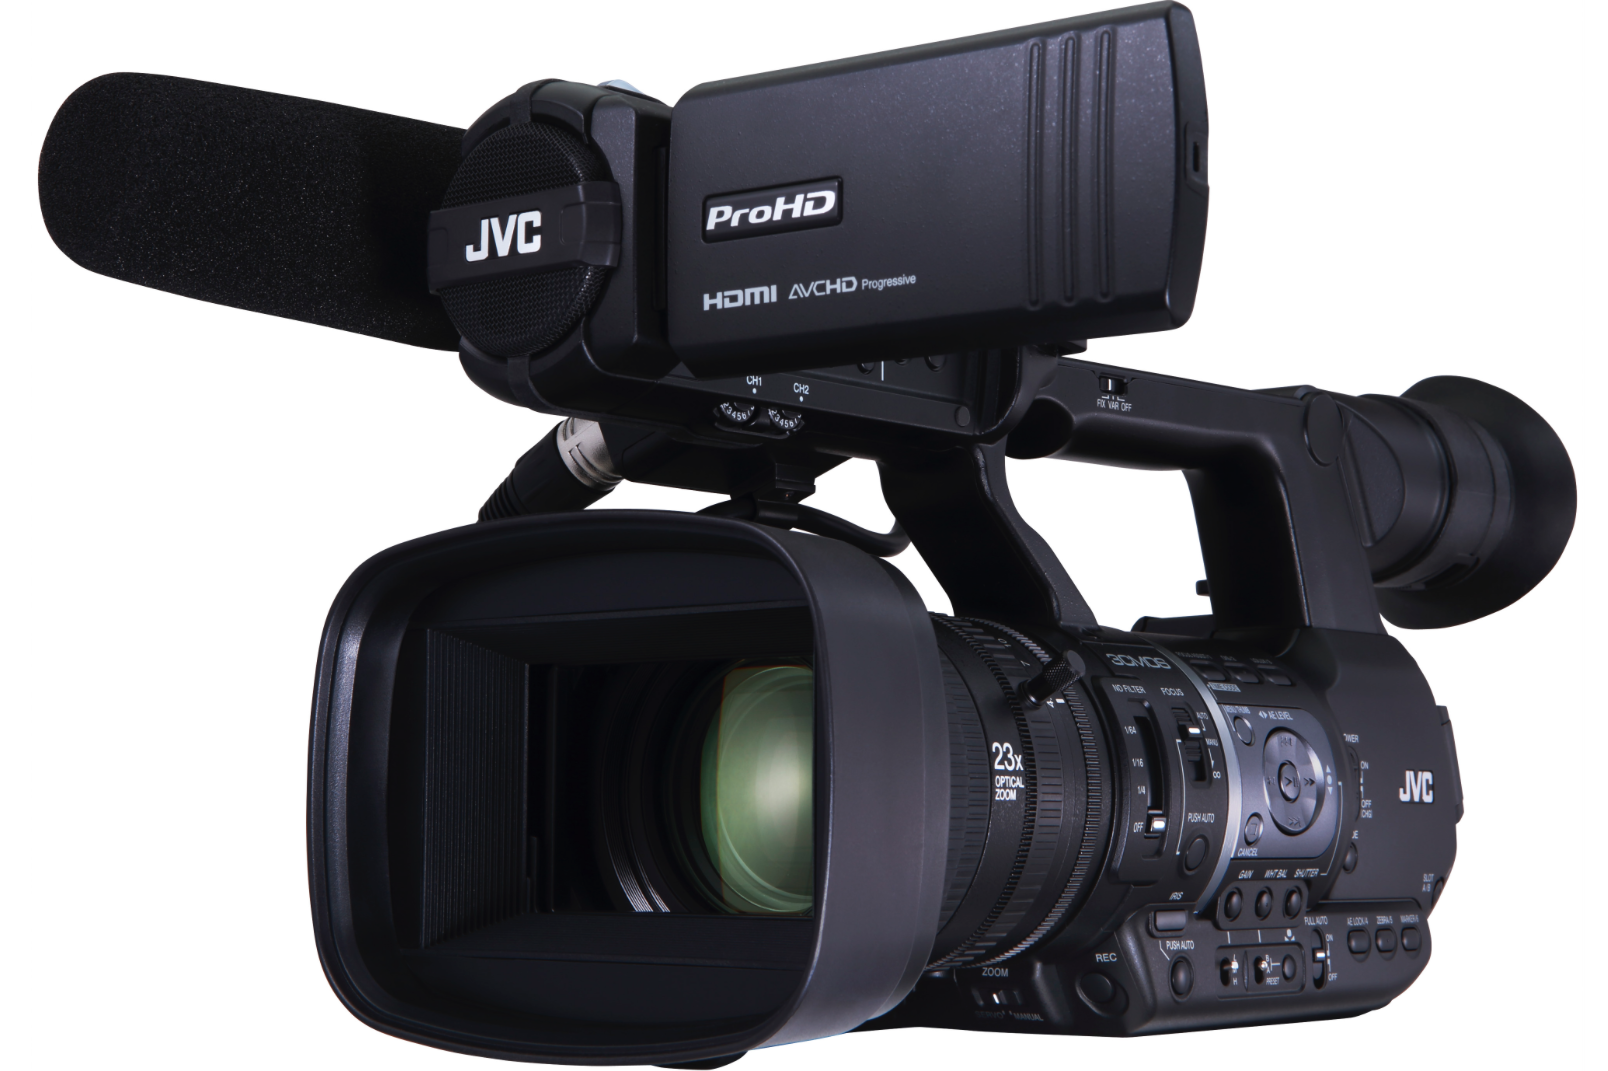 JVC adds built-in IFB to their GY-HM660 mobile news camcorder